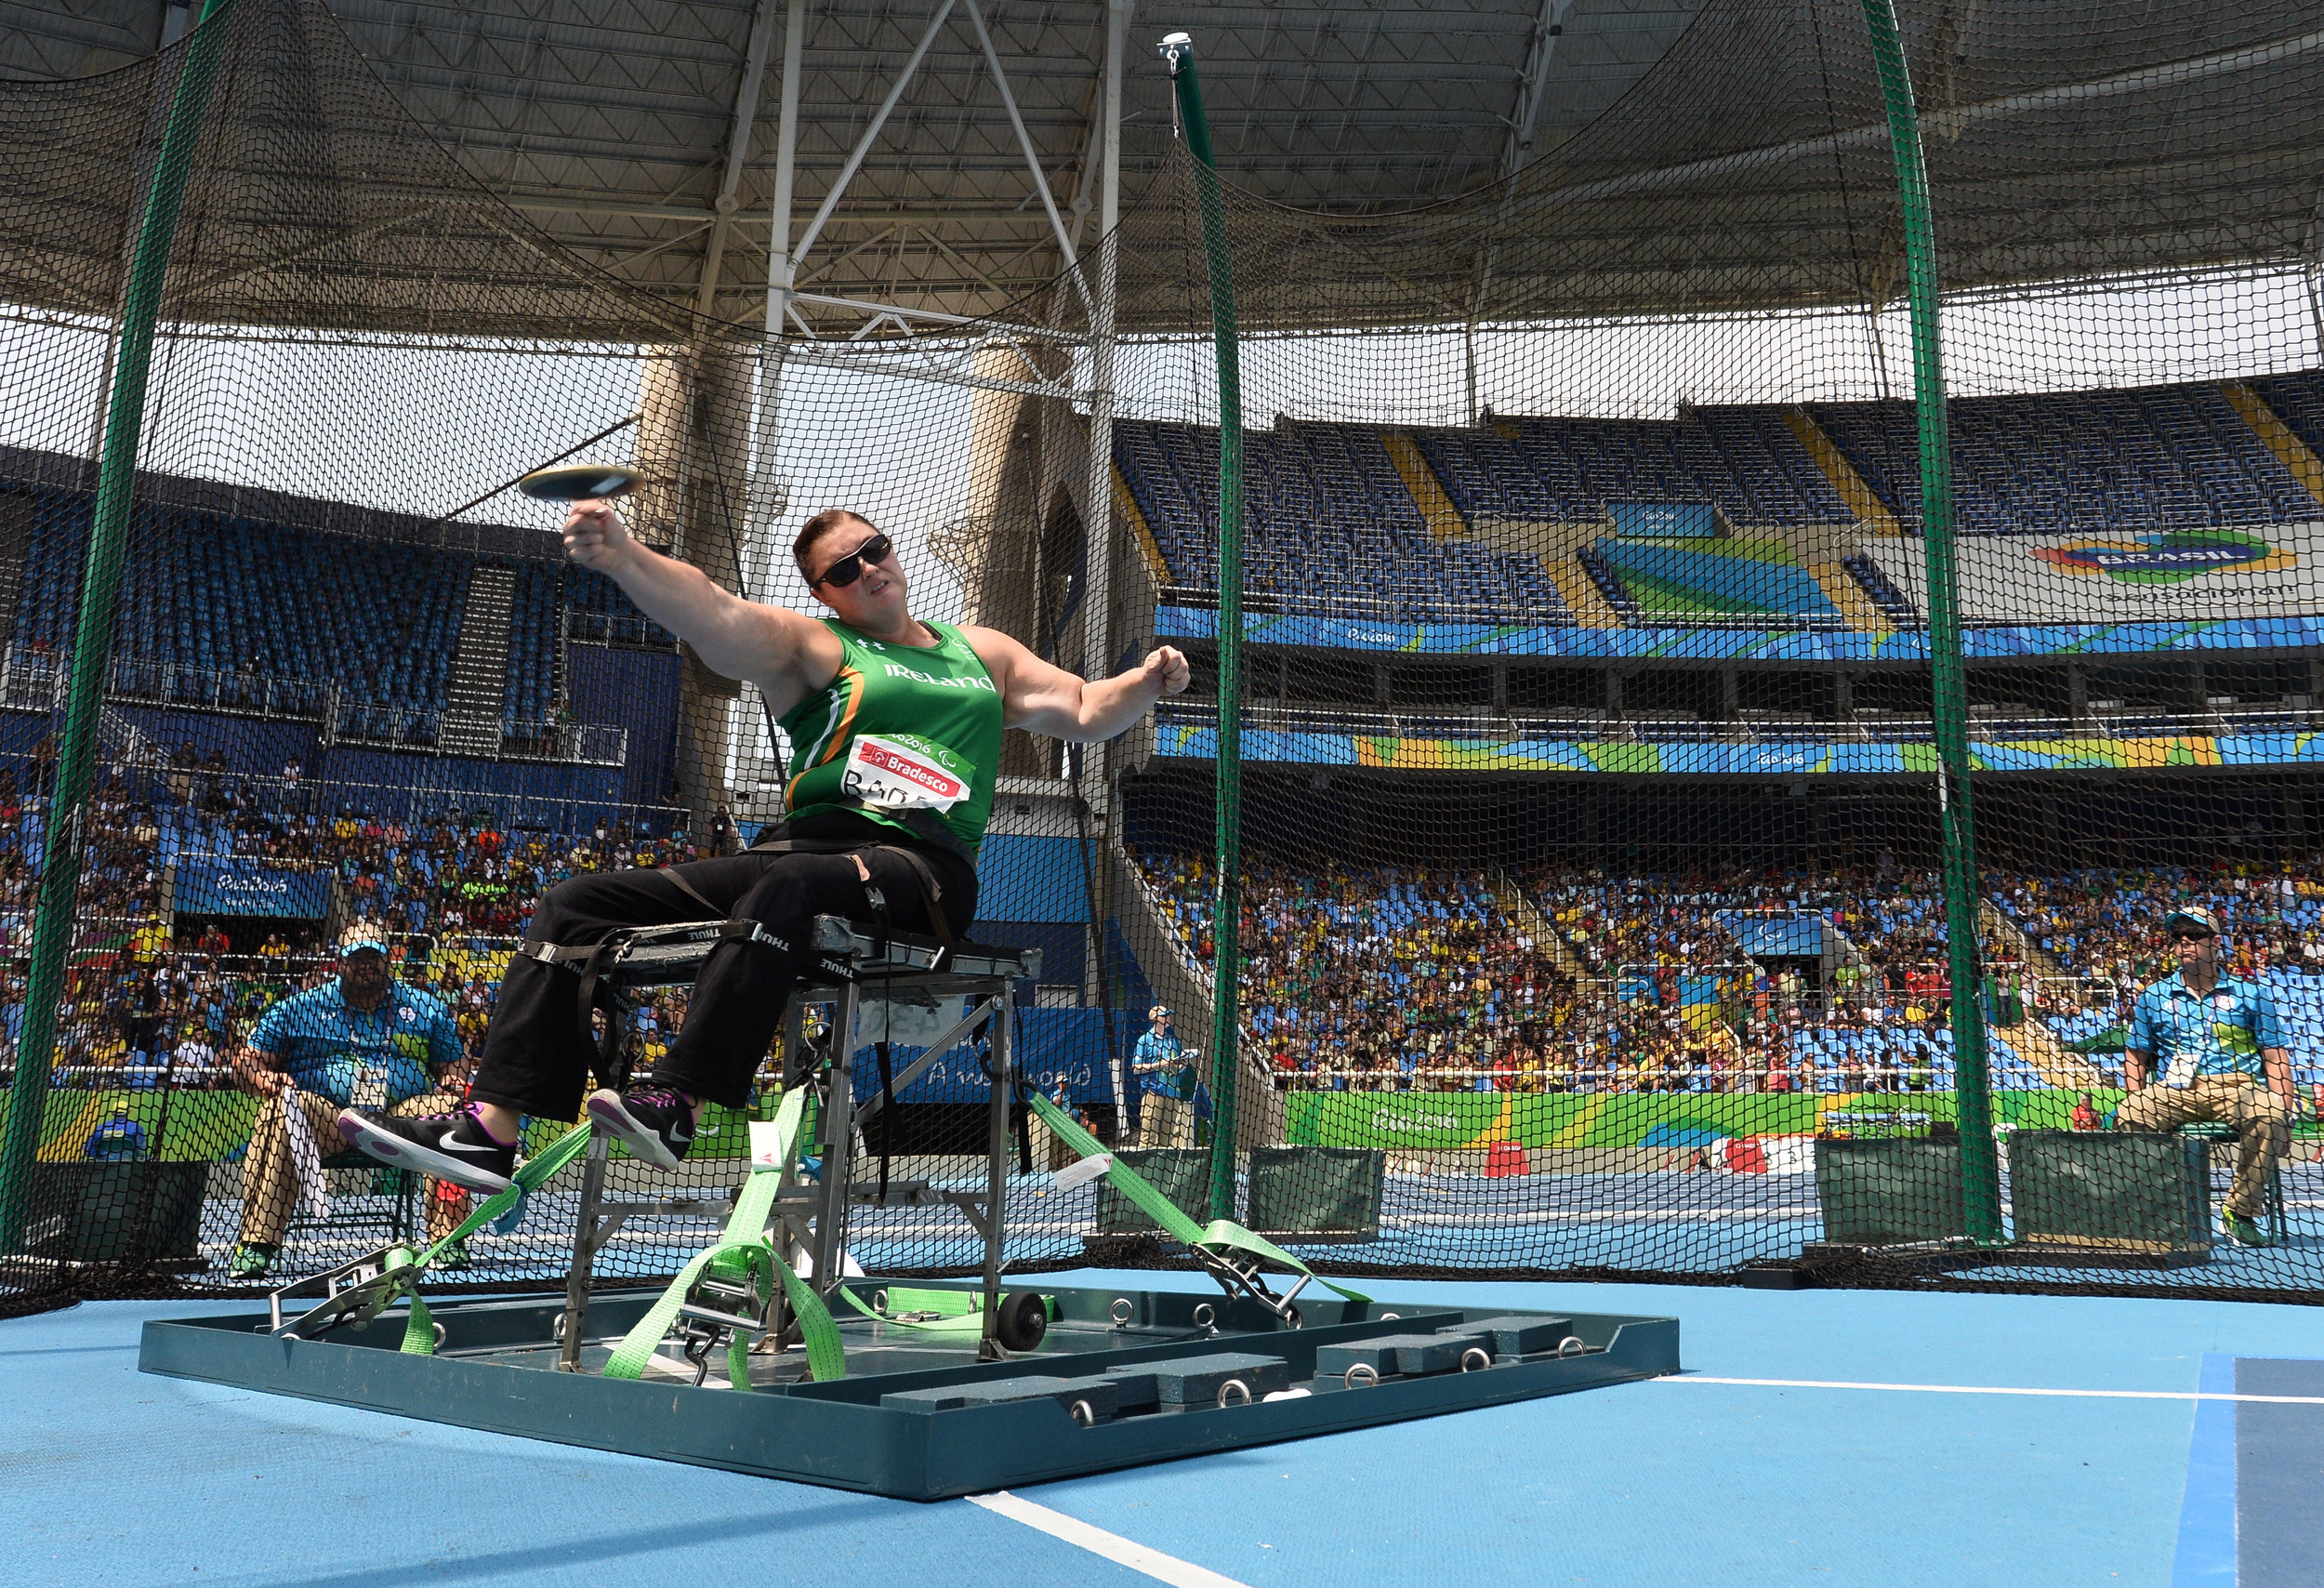 Athletics: Orla Barry in the F57 Discus Final